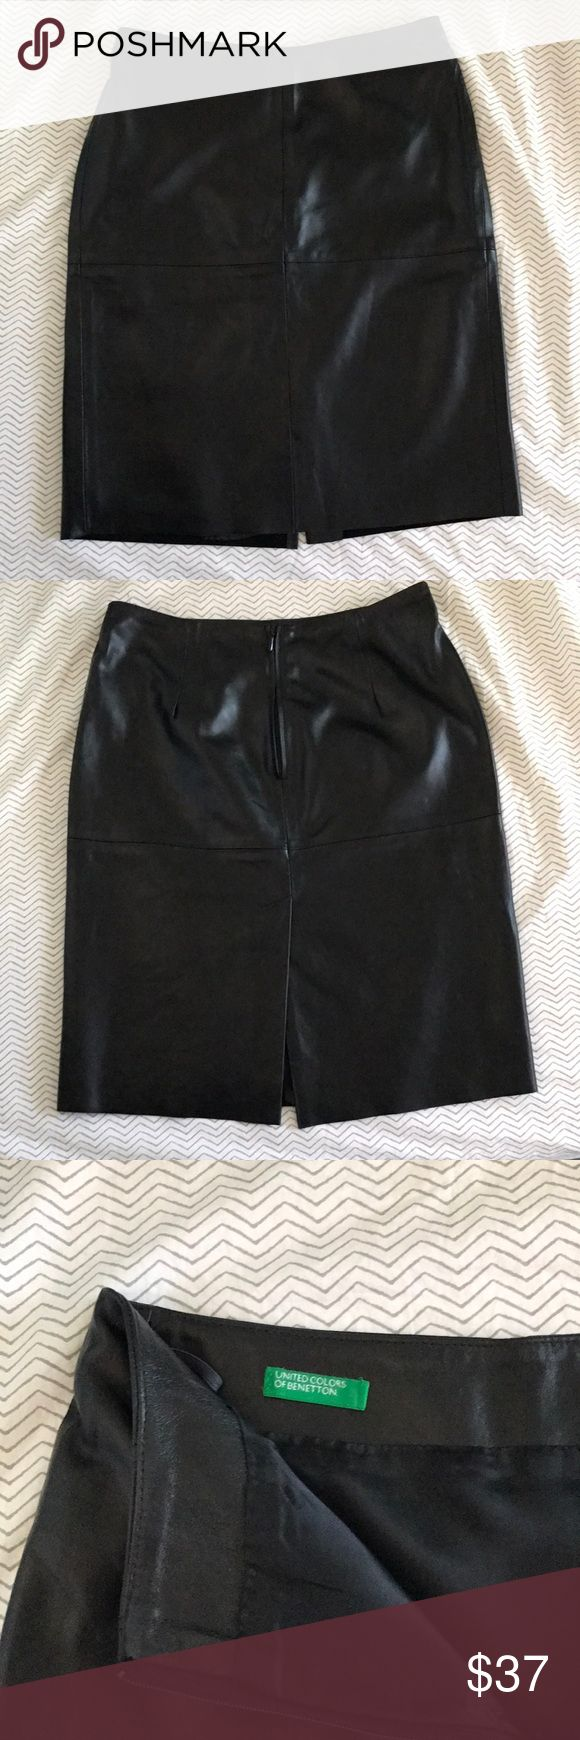 Leather Skirt United Colors of Benetton Black A line leather skirt. Italian size 38, US size 4. Inside lined with rayon. Very good condition, like new! United Colors Of Benetton Skirts Midi